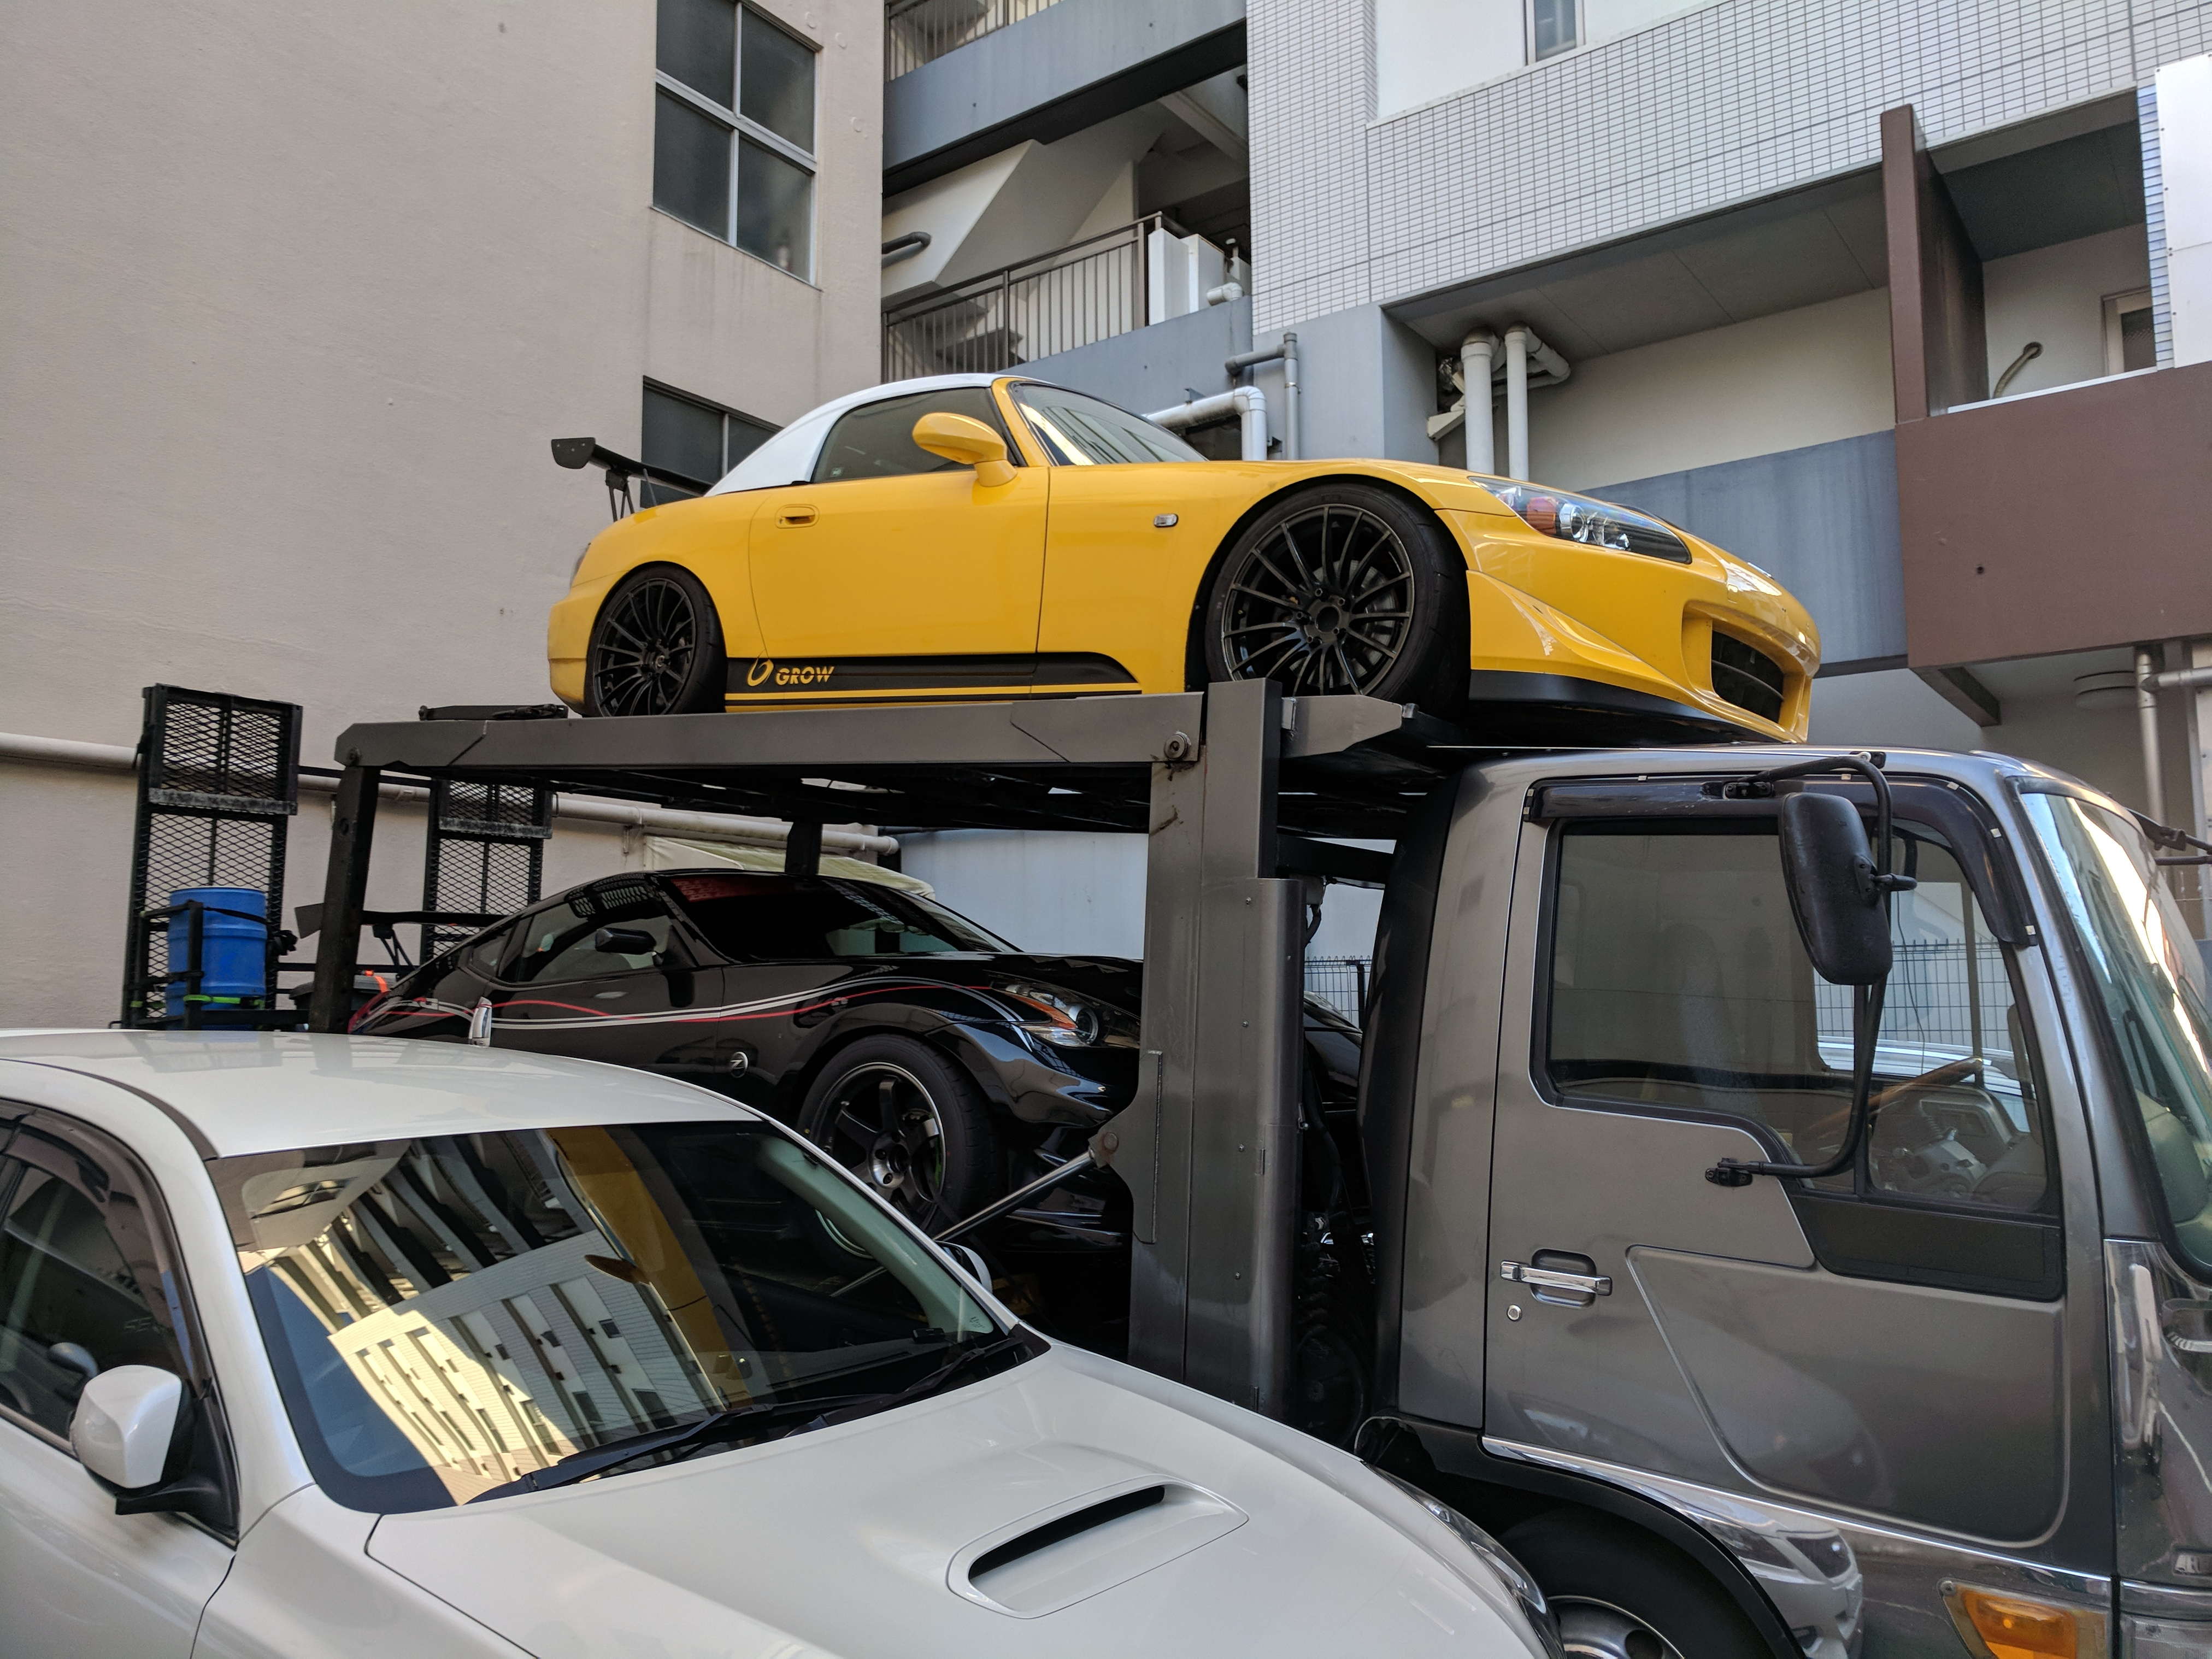 Just a couple blocks from my AirBNB, I stumbled across this trailed sporting both an S2K and Z33, both appeared to be setup for track use